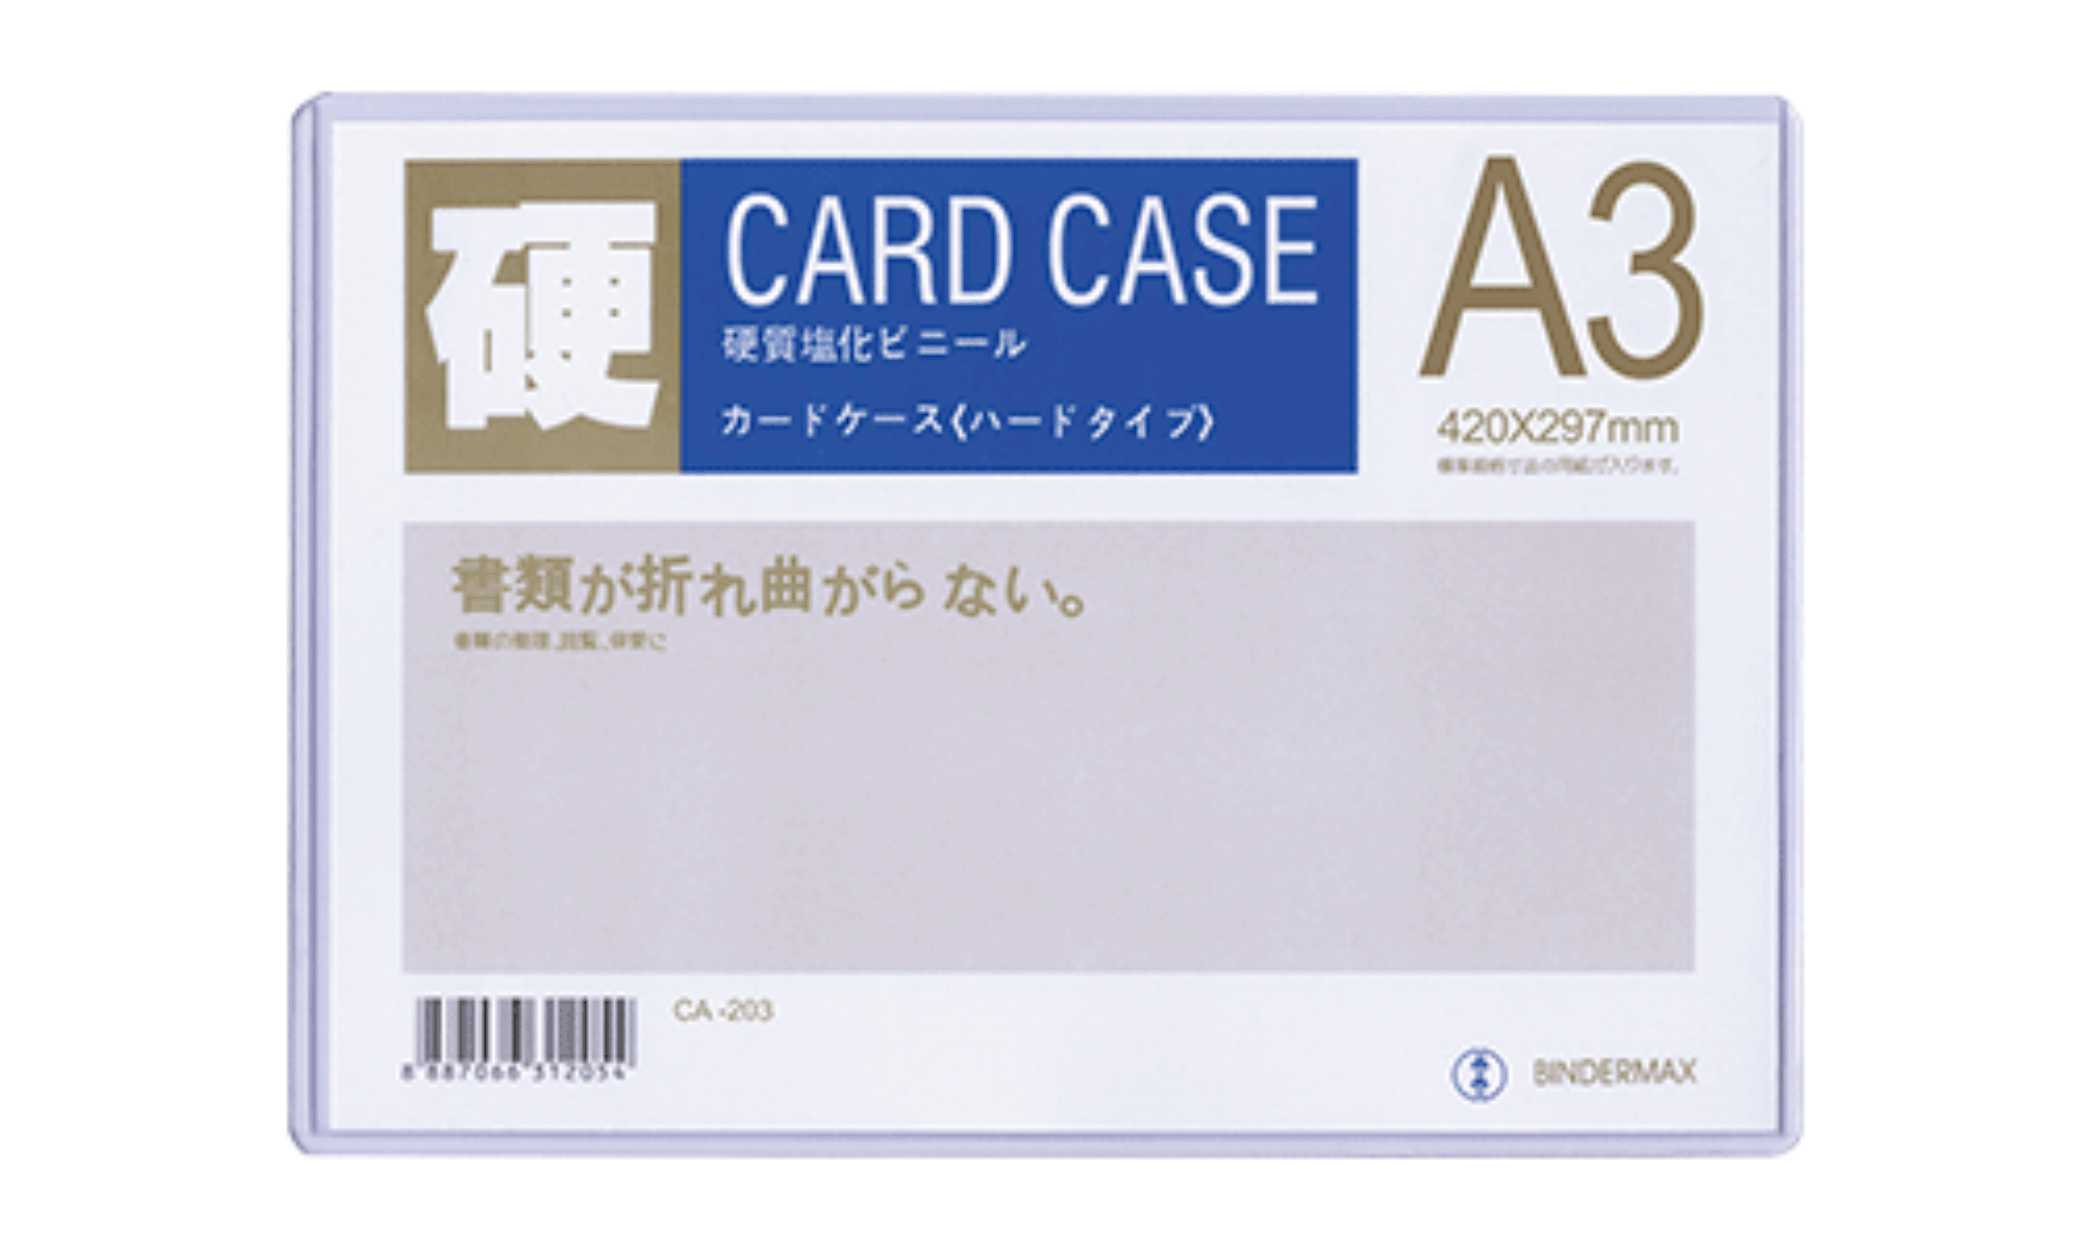 A3 Hard Card Case